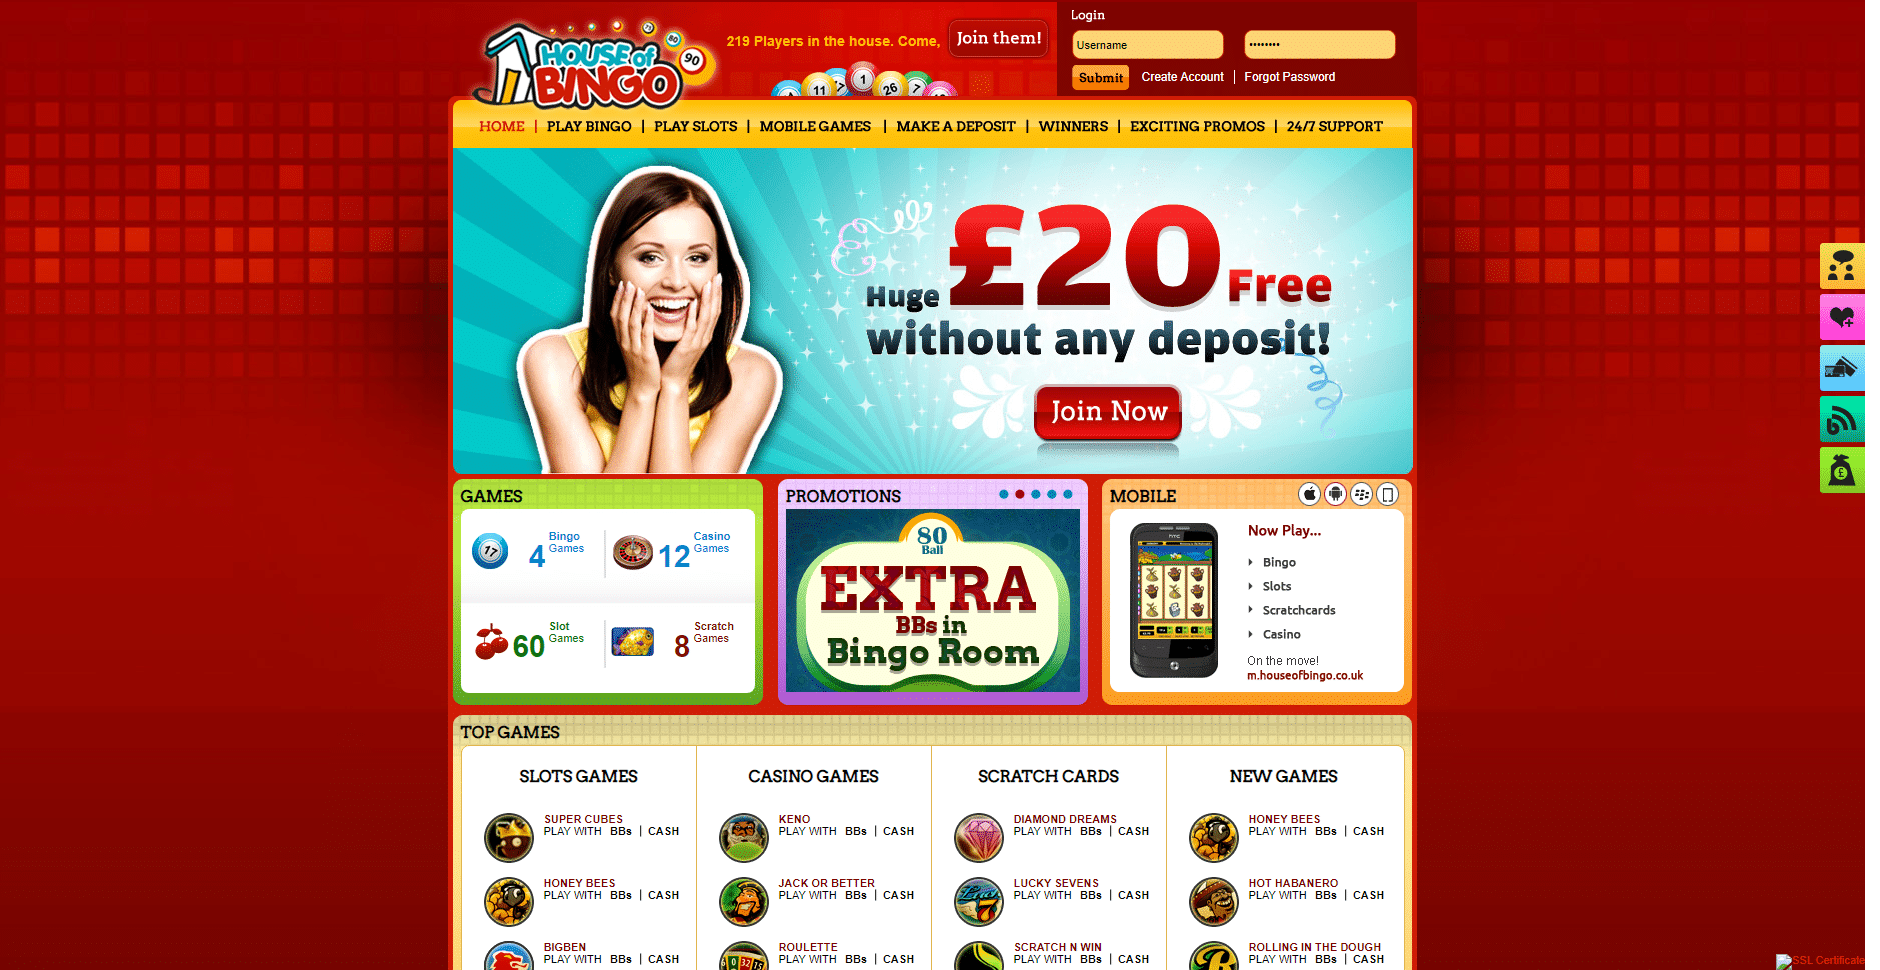 House of Bingo website